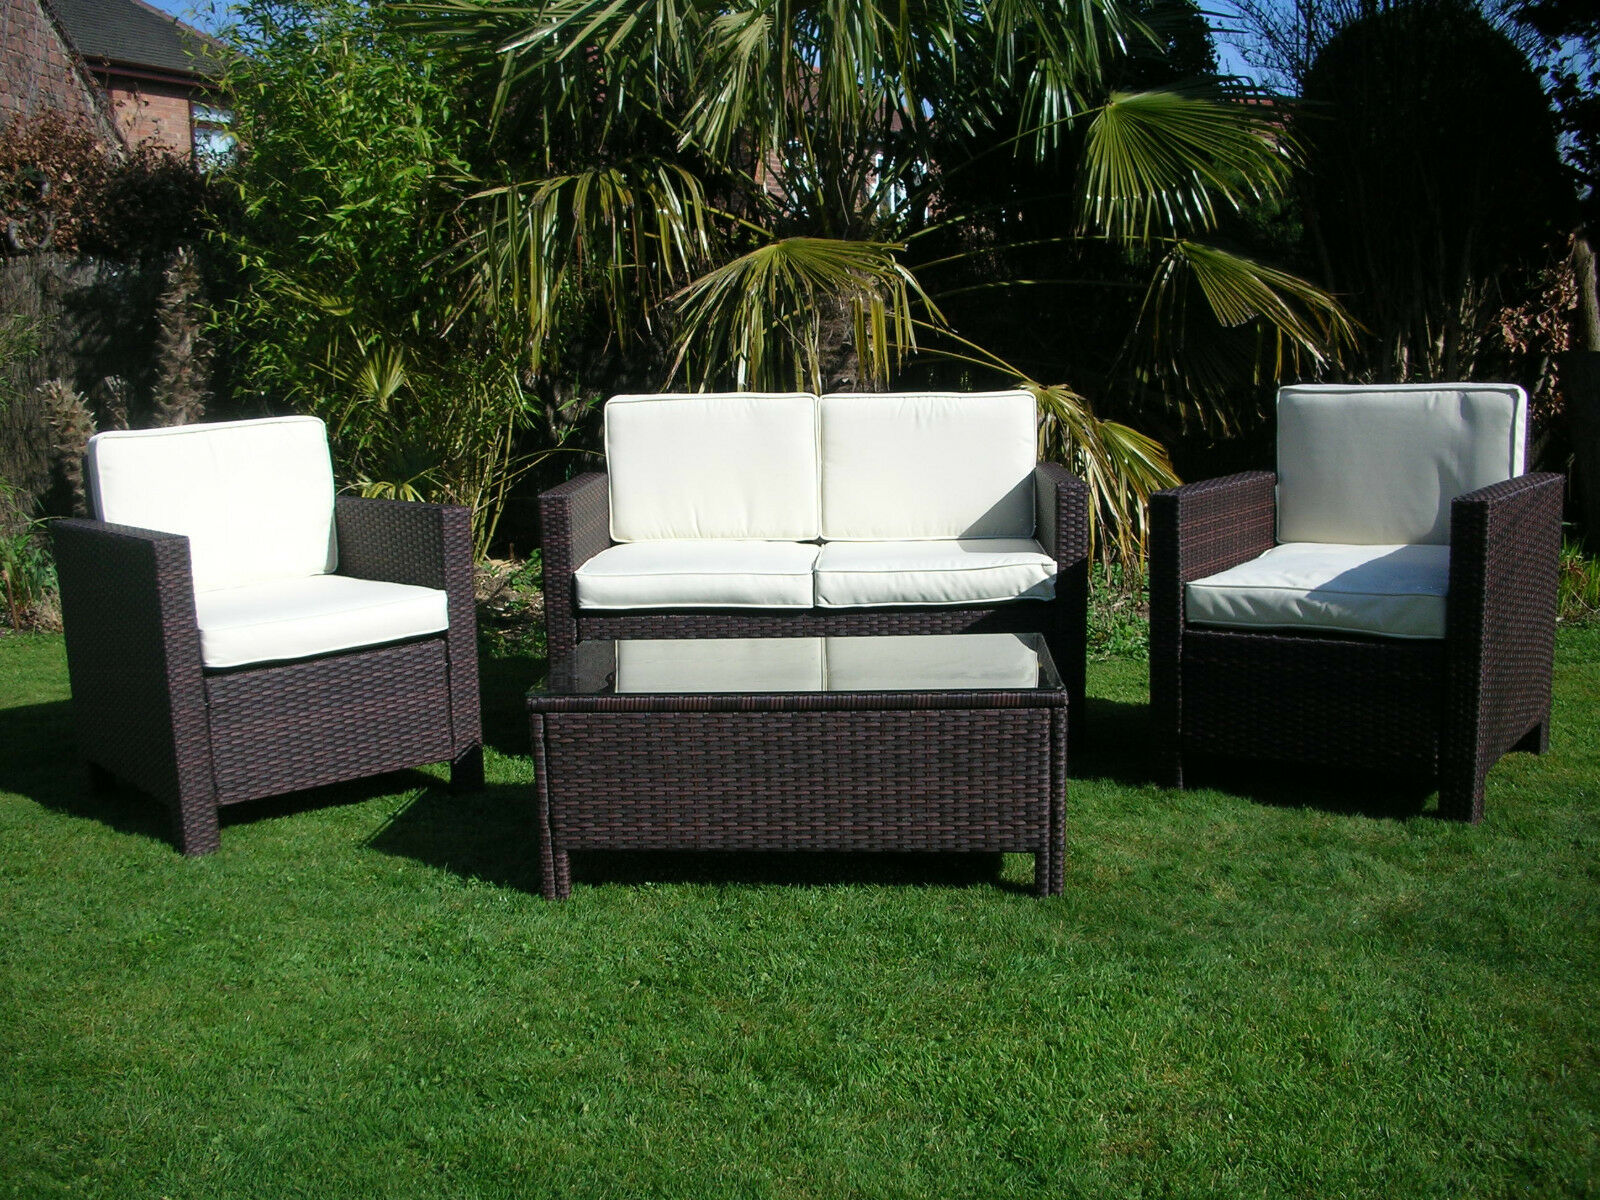 rattan or wicker chairs chair exercise groups new garden outdoor conservatory furniture